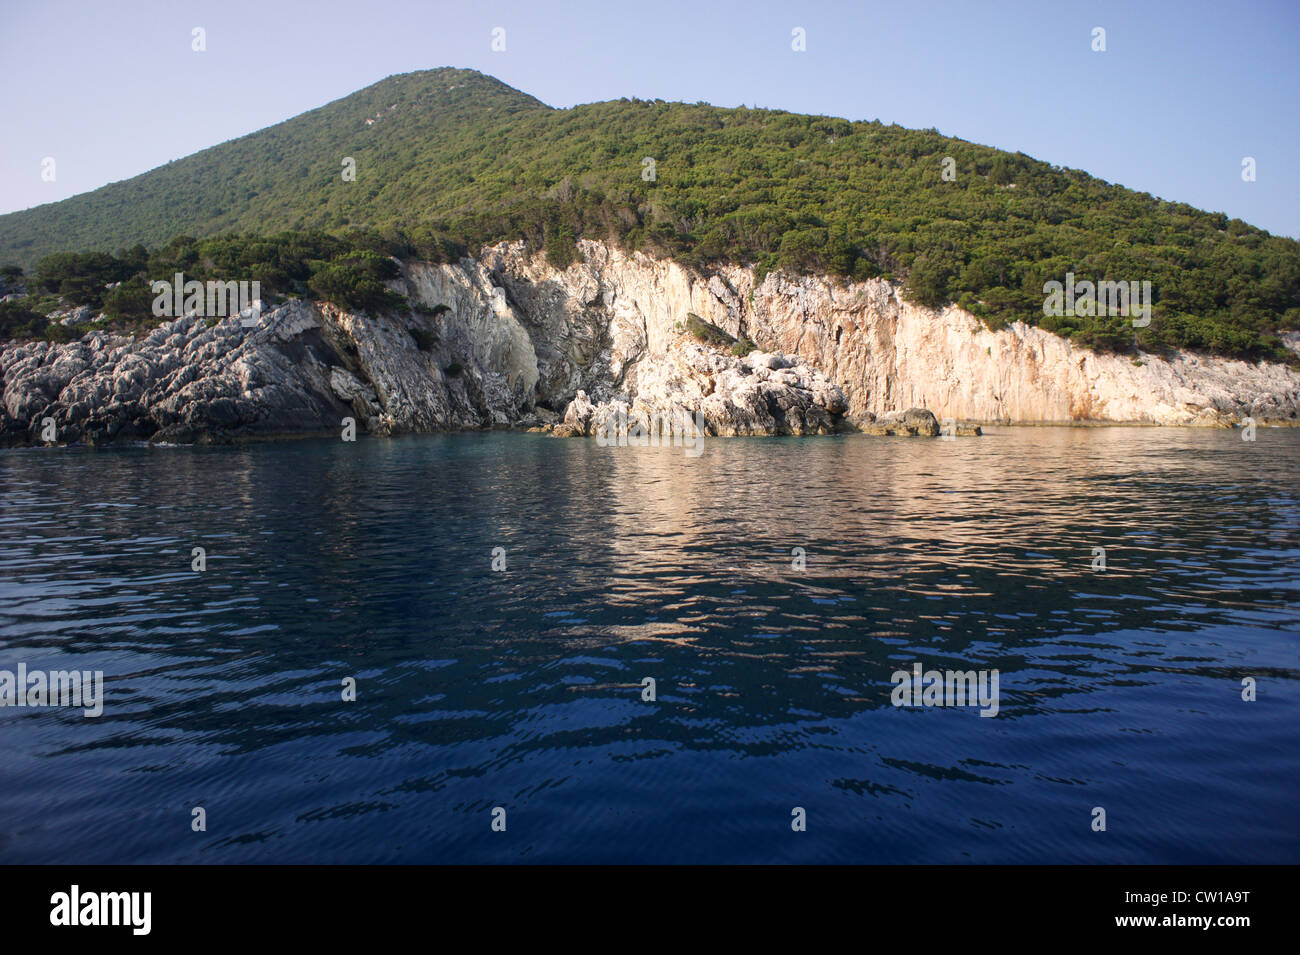 Coastline and cliffs on the island of Ithaca, Ionian Islands, Greece - Stock Image